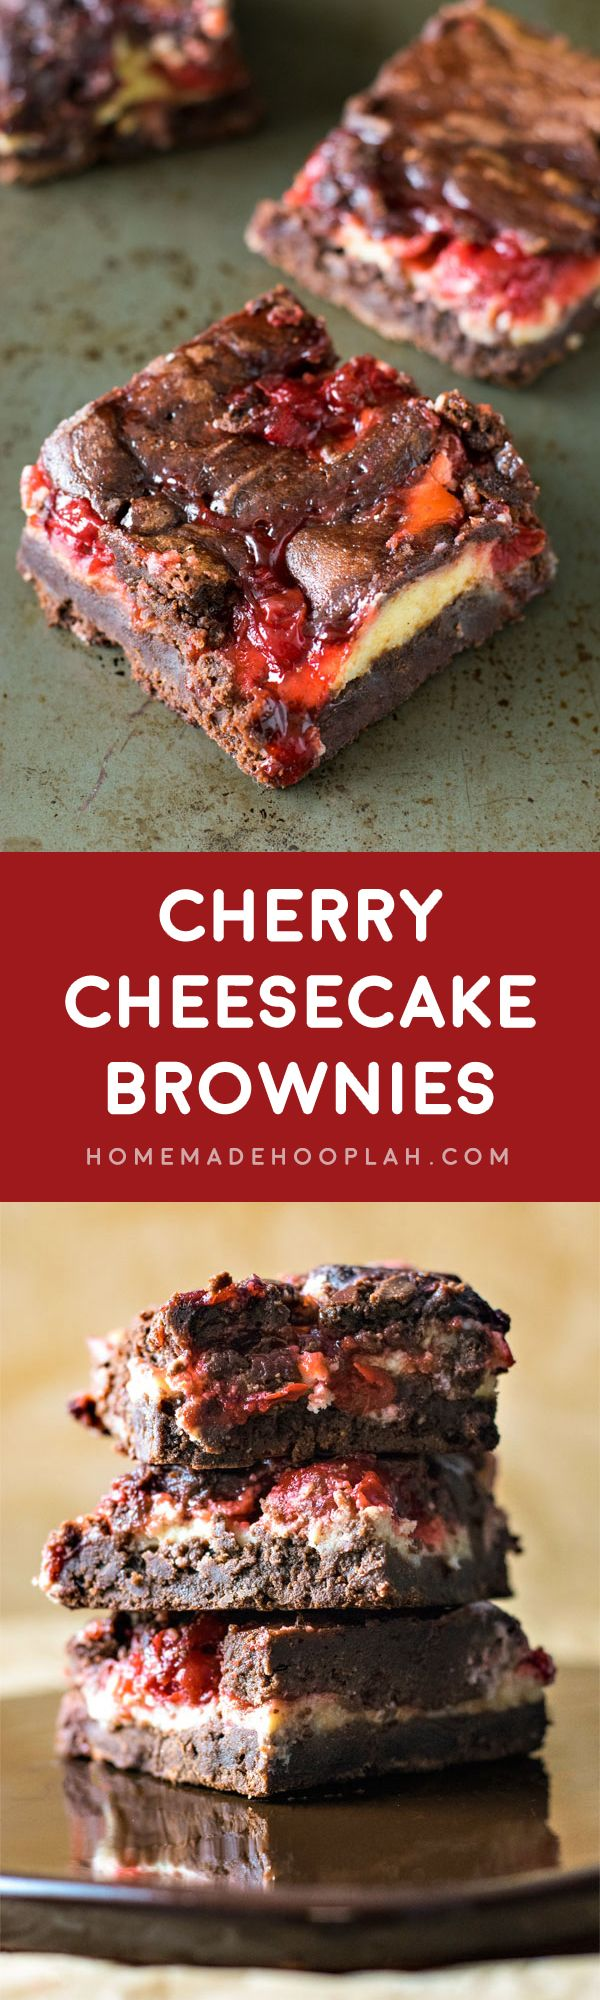 ... cheesecake and cherry pie filling. | HomemadeHooplah.com | Pinterest